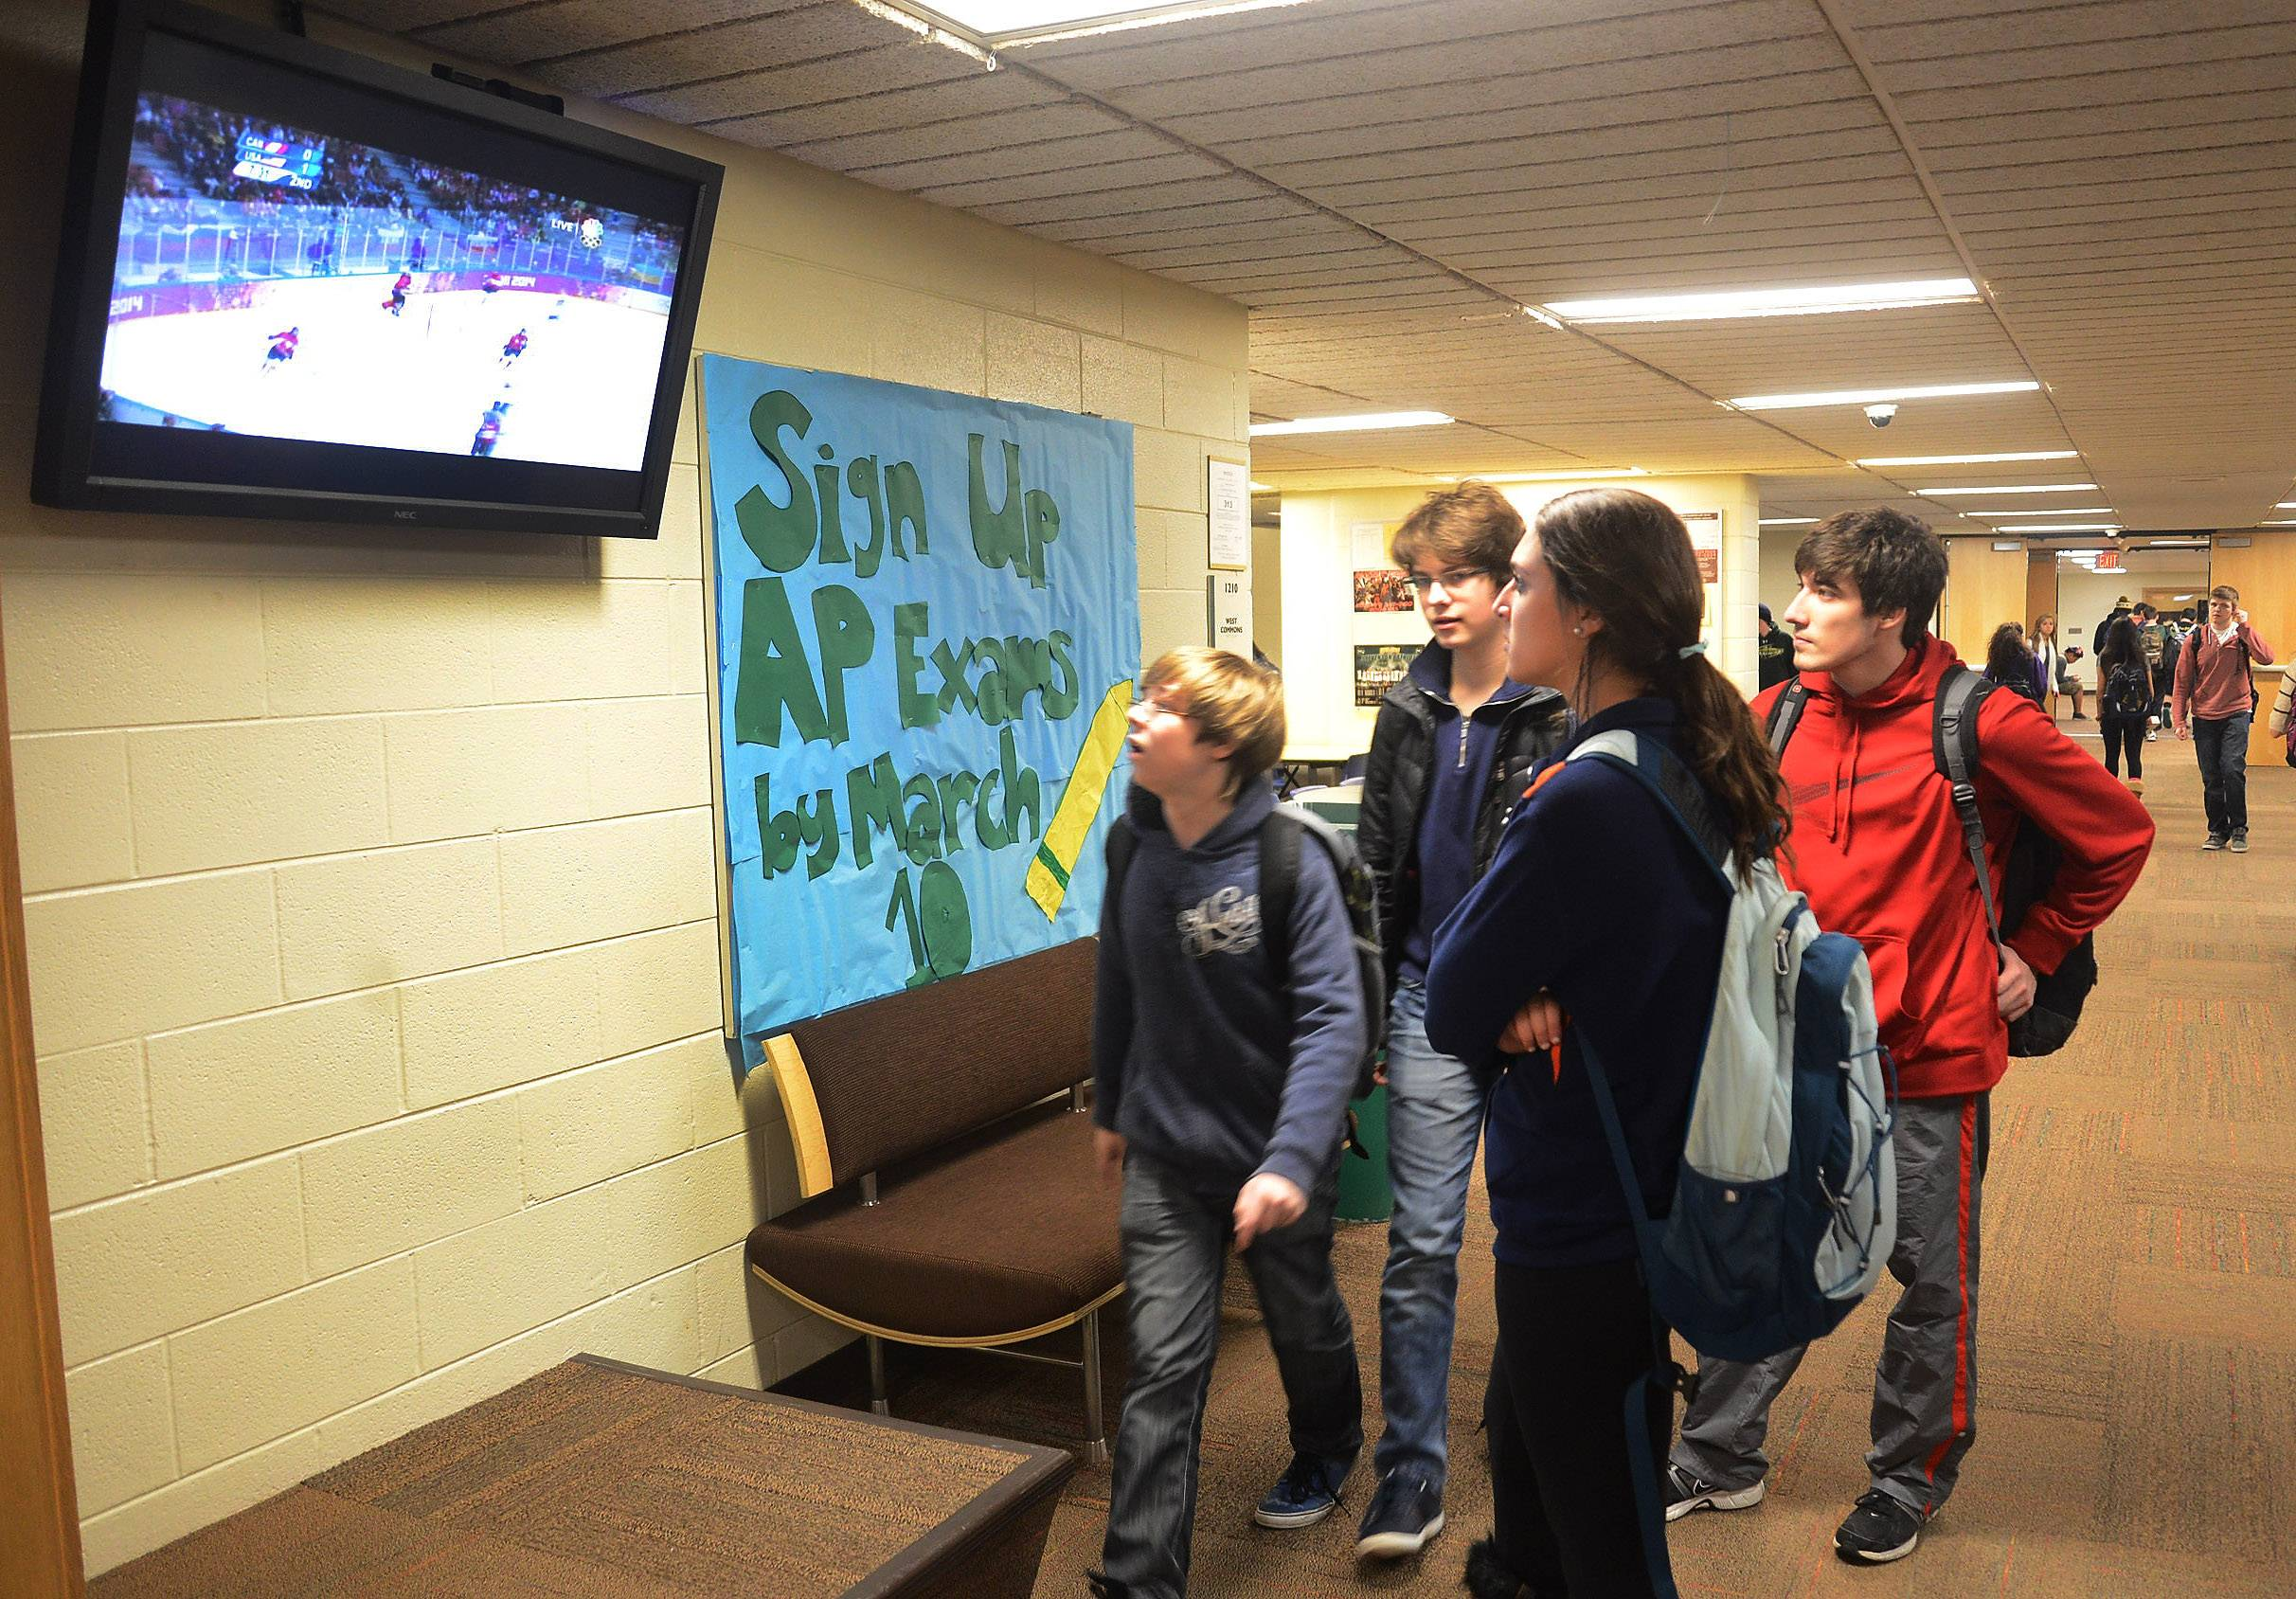 Stevenson High School students watched the U.S. women's hockey team, including alum Megan Bozek, lose to Canada for the gold medal at the 2014 Winter Olympic Games in Sochi, Russia.